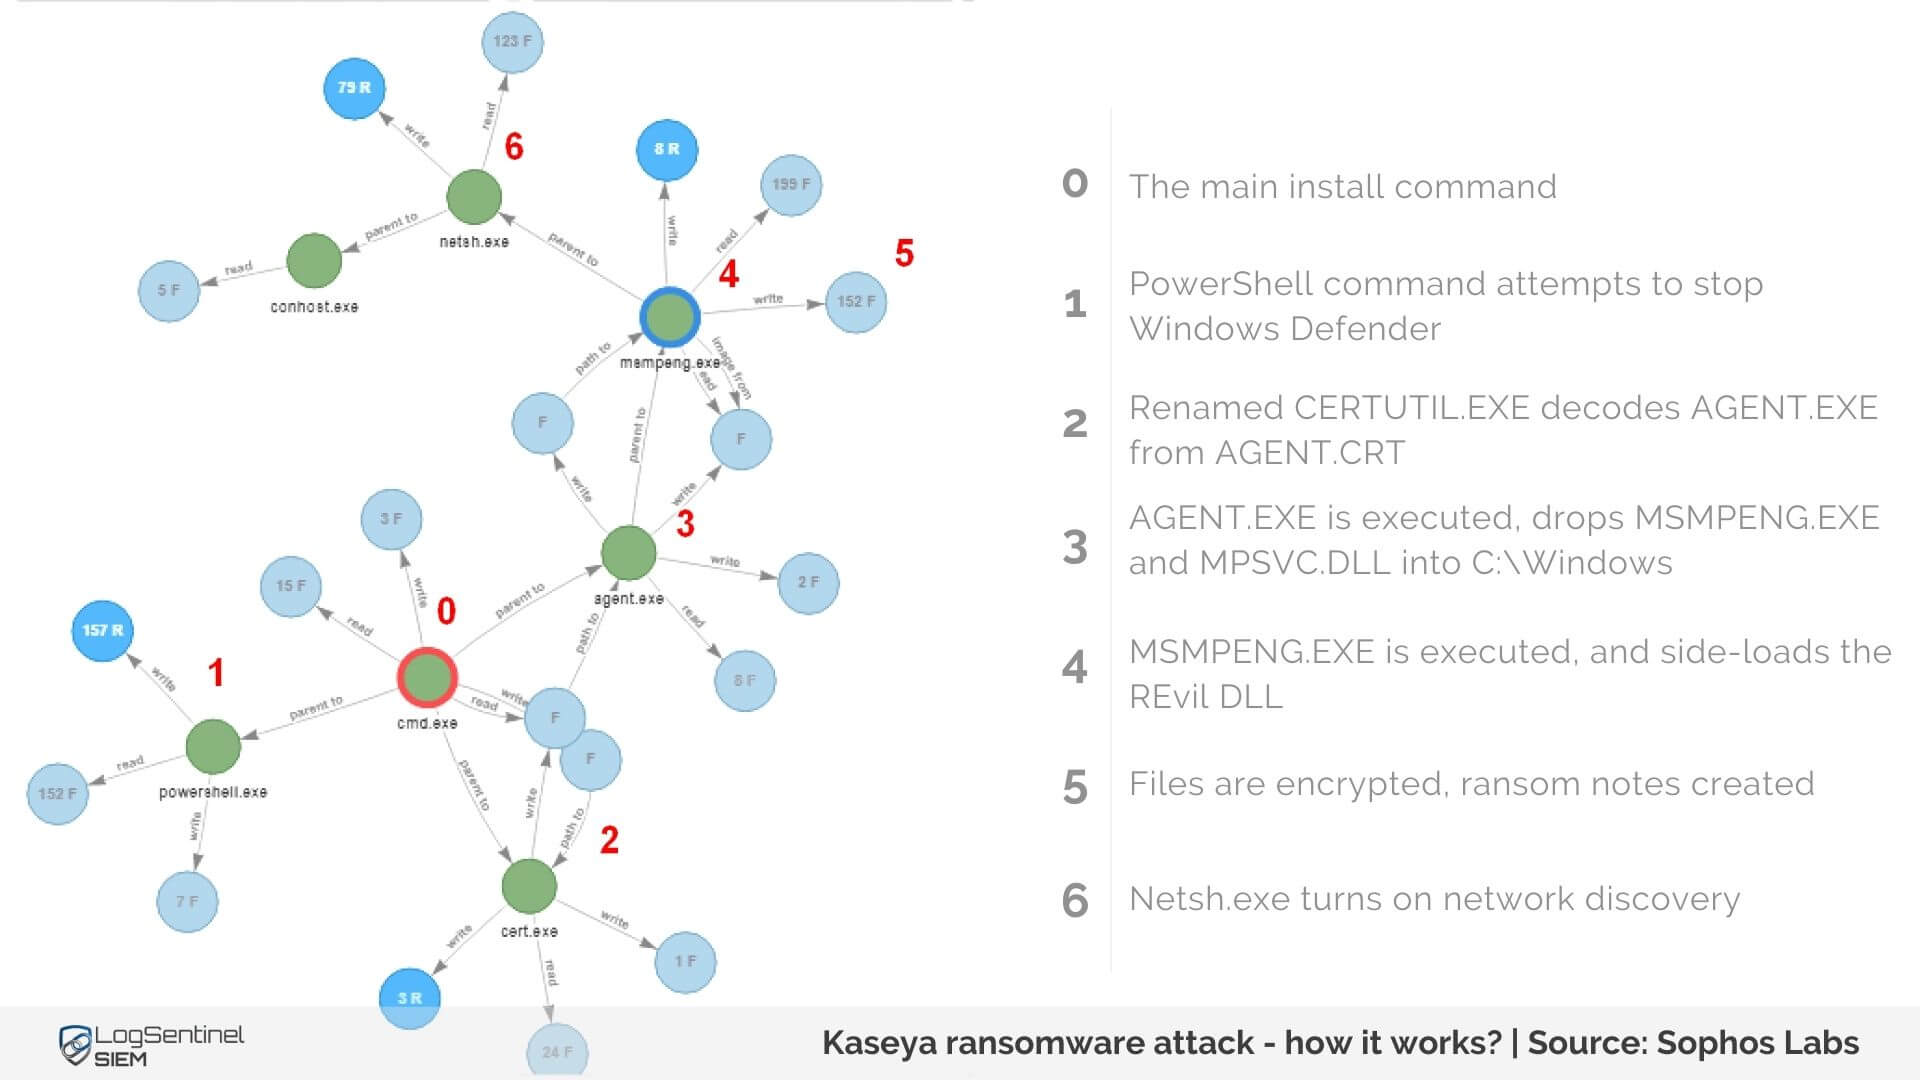 Kaseya ransomware attack - how it works